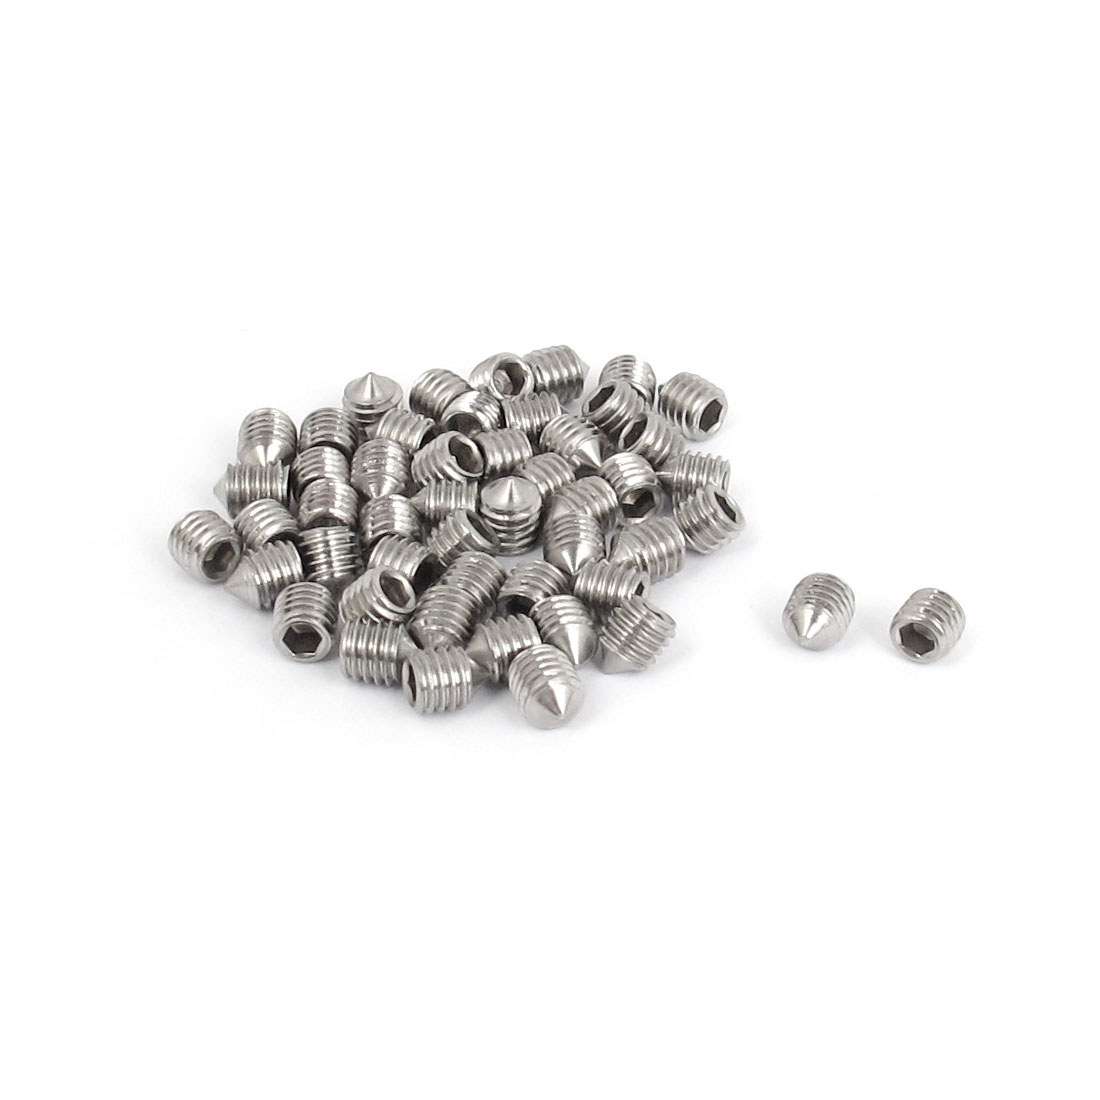 M5x6mm 304 Stainless Steel Cone Point Hexagon Socket Grub Screws 50pcs